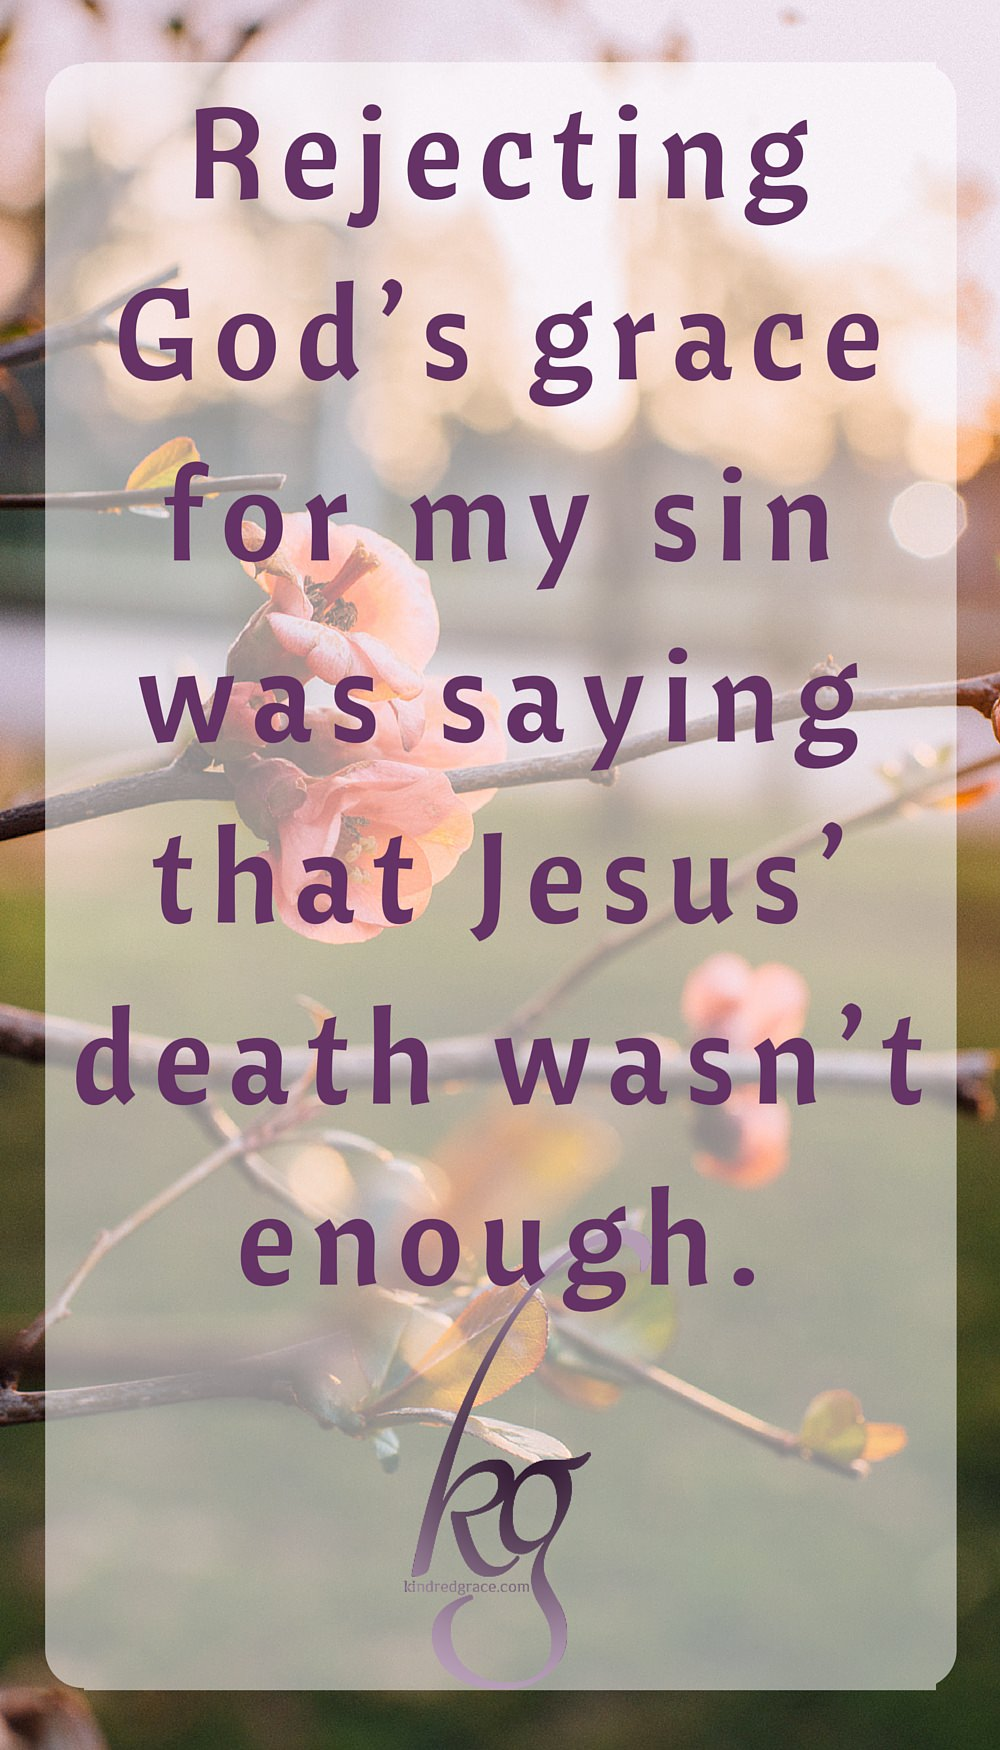 Rejecting God's grace for my sin was saying that Jesus' death wasn't enough. via @KindredGrace